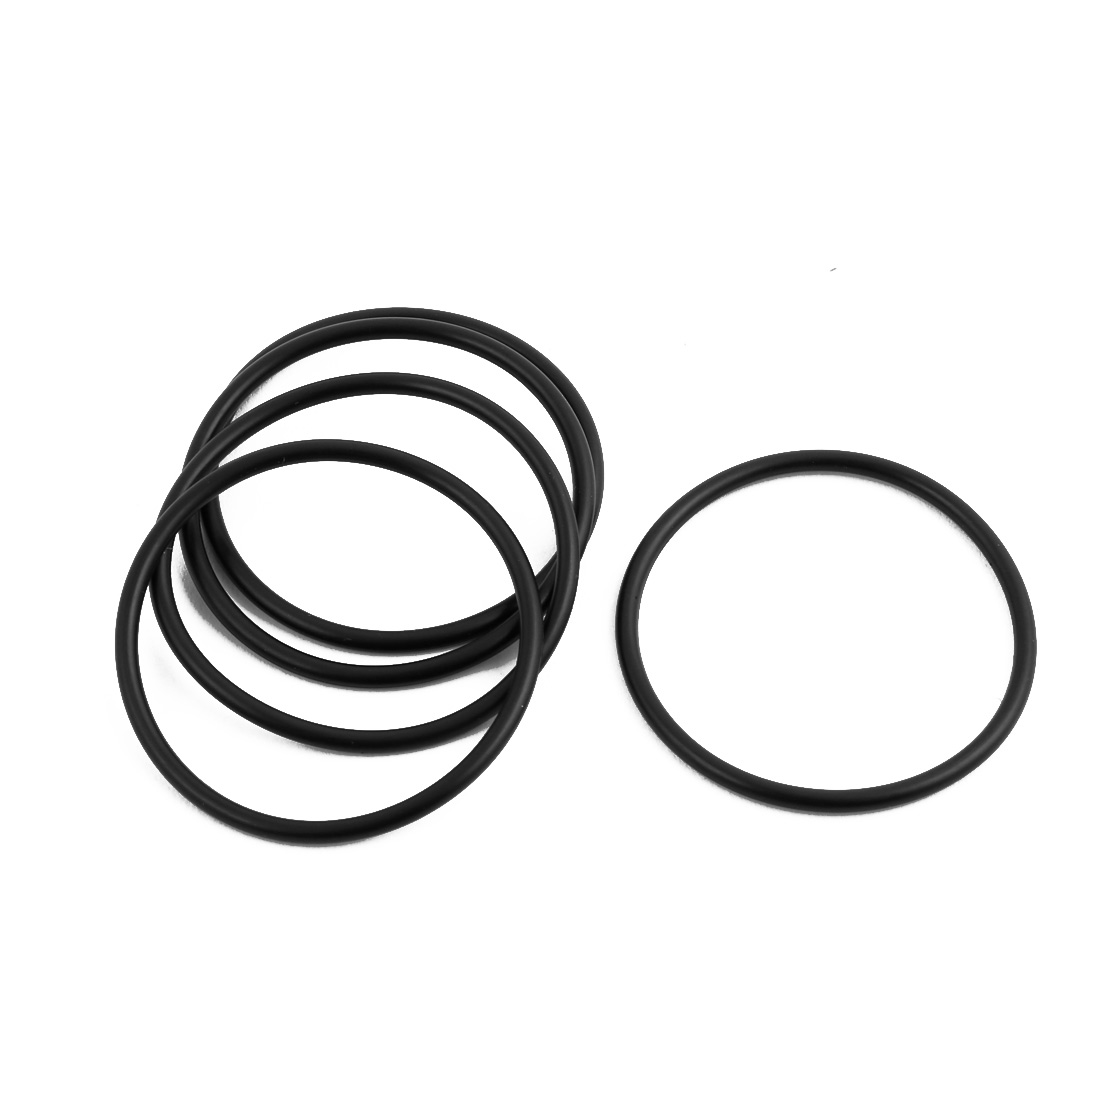 5Pcs Black 37mm Dia 2mm Thickness Nitrile Rubber O Ring NBR Sealing Grommets